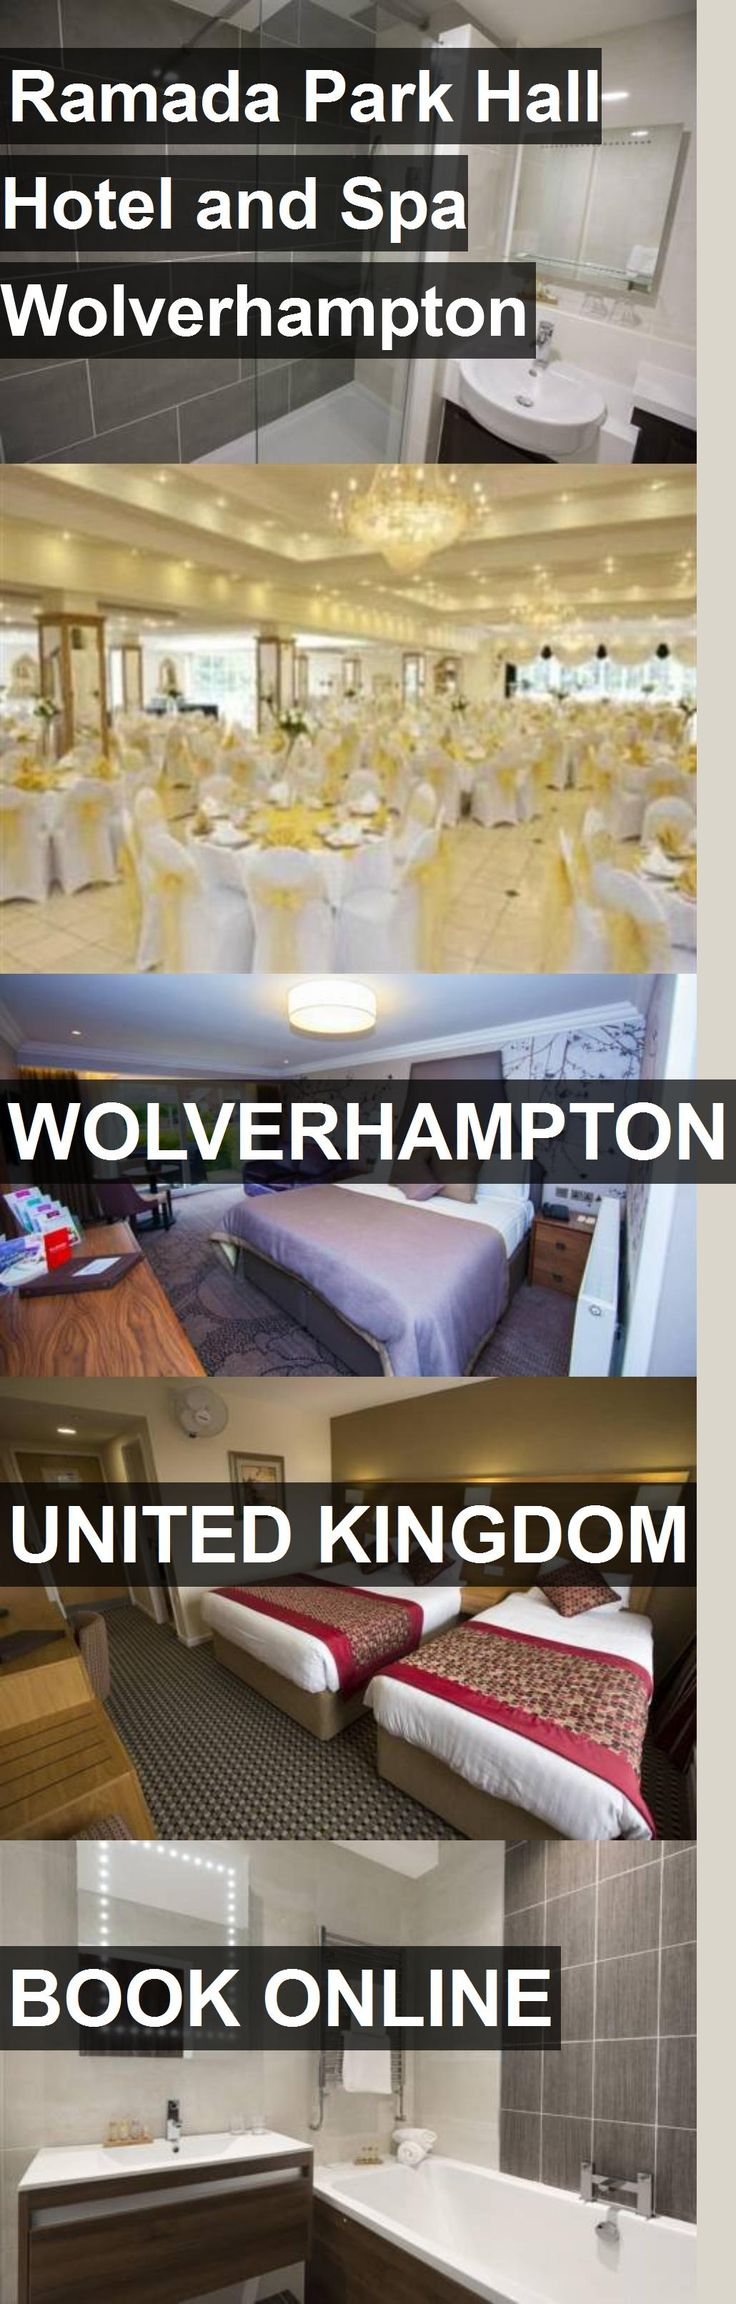 Ramada Park Hall Hotel and Spa Wolverhampton in Wolverhampton, United Kingdom. For more information, photos, reviews and best prices please follow the link. #UnitedKingdom #Wolverhampton #travel #vacation #hotel